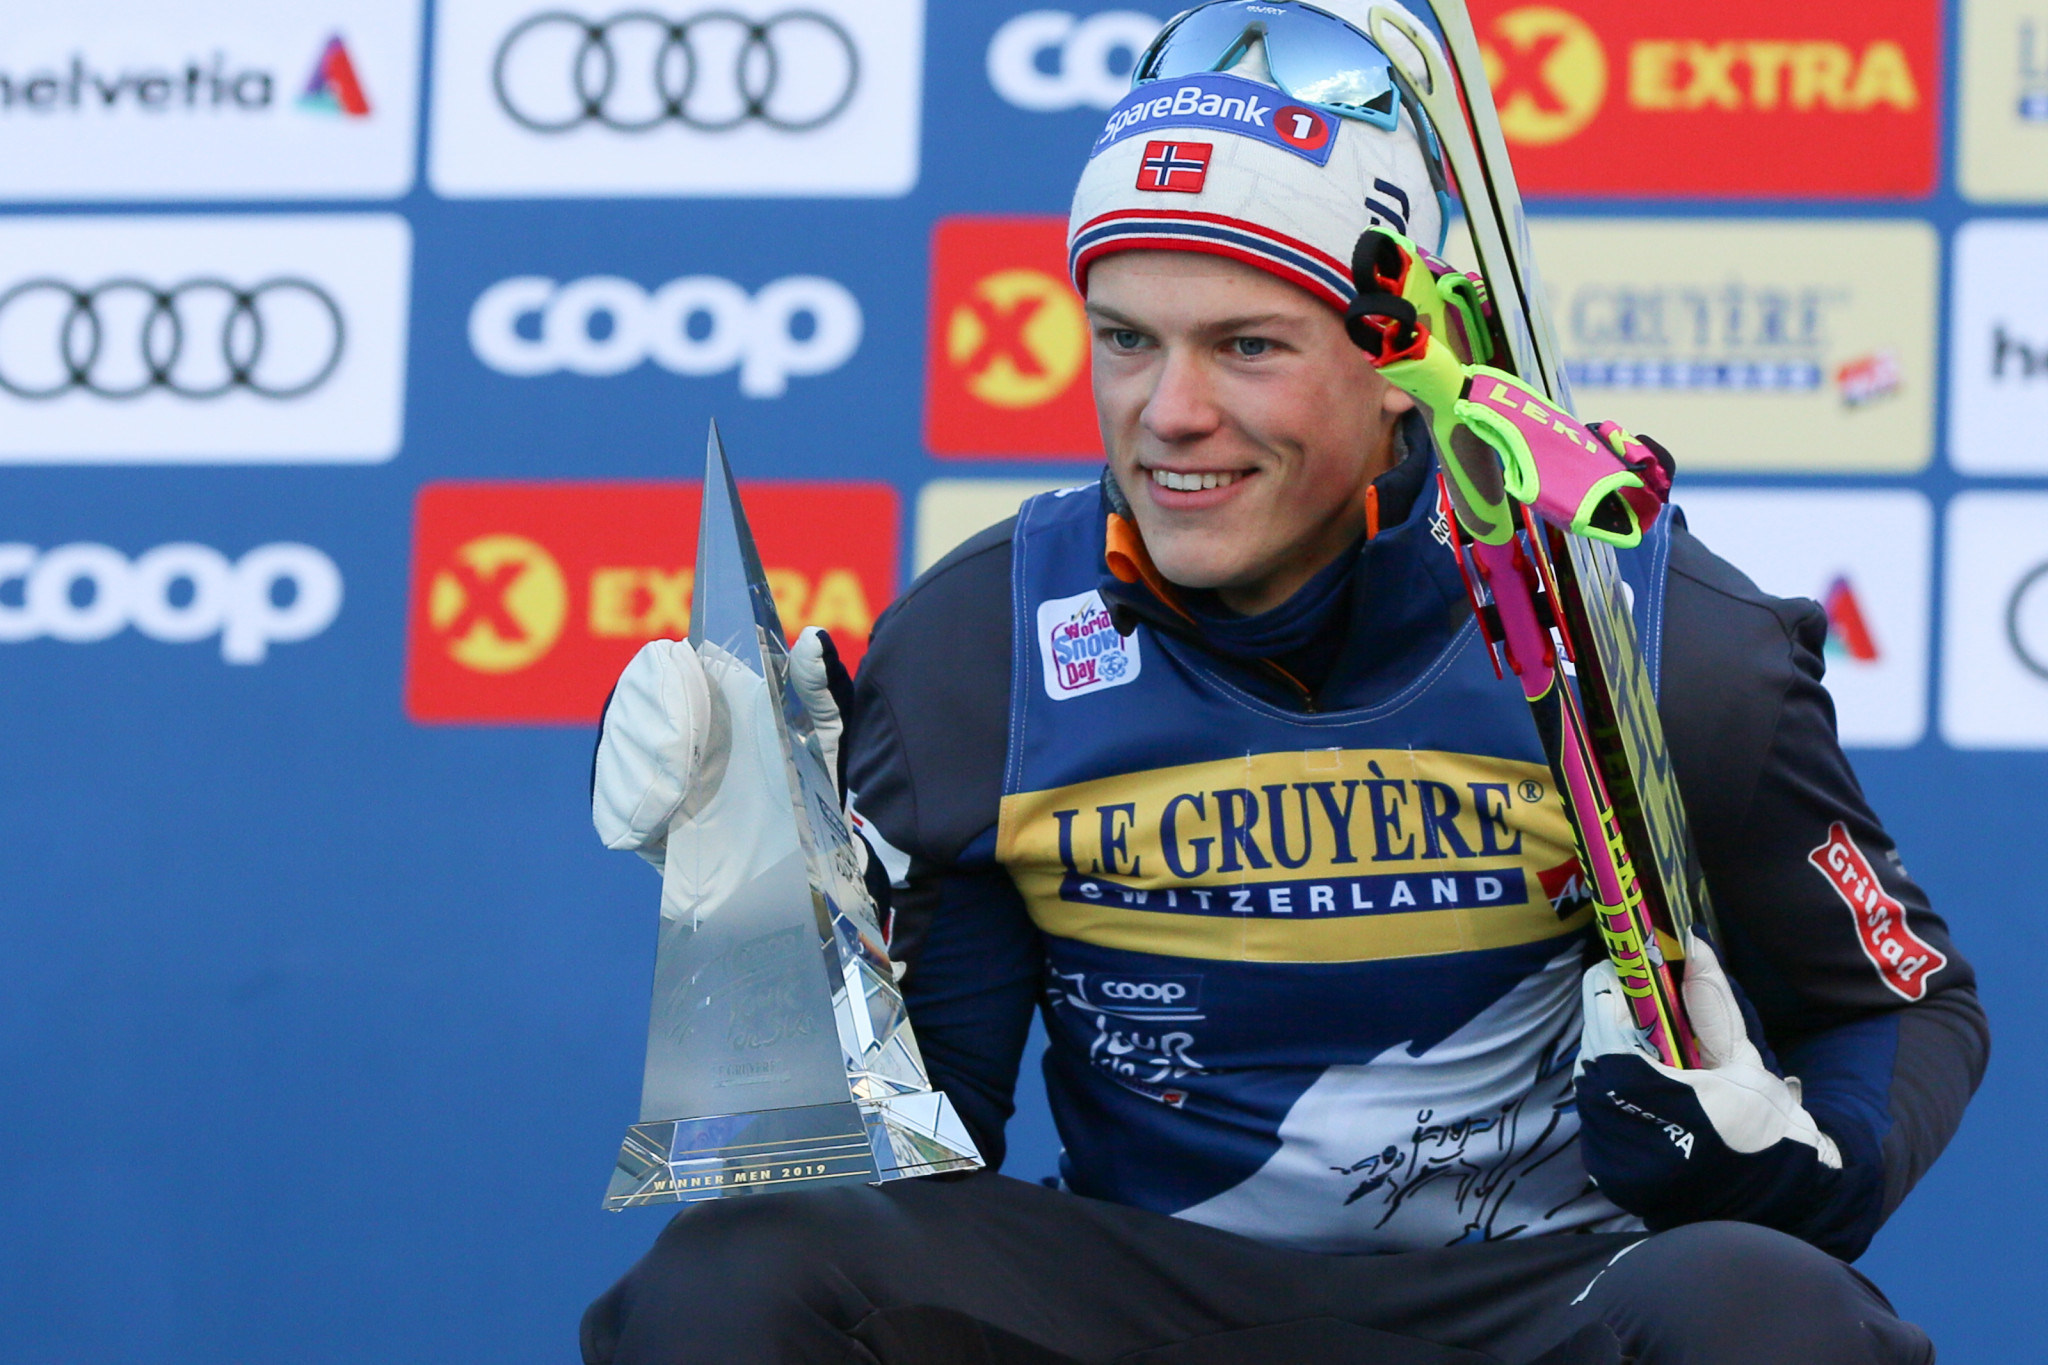 Norway favourites for early success at FIS World Nordic Ski Championships in Seefeld